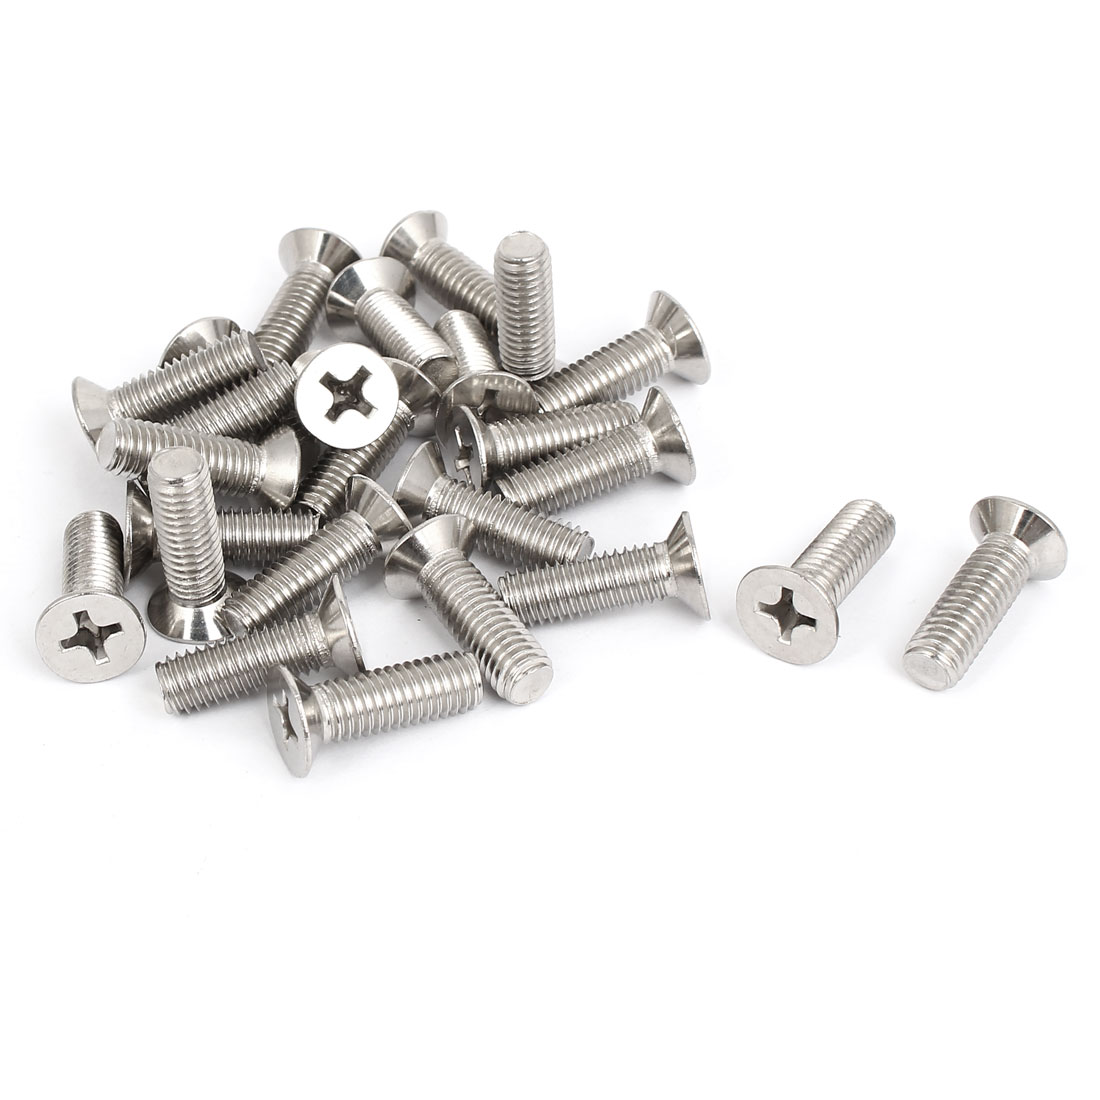 M8x25mm Stainless Steel Countersunk Flat Head Cross Phillips Screw Bolts 25pcs